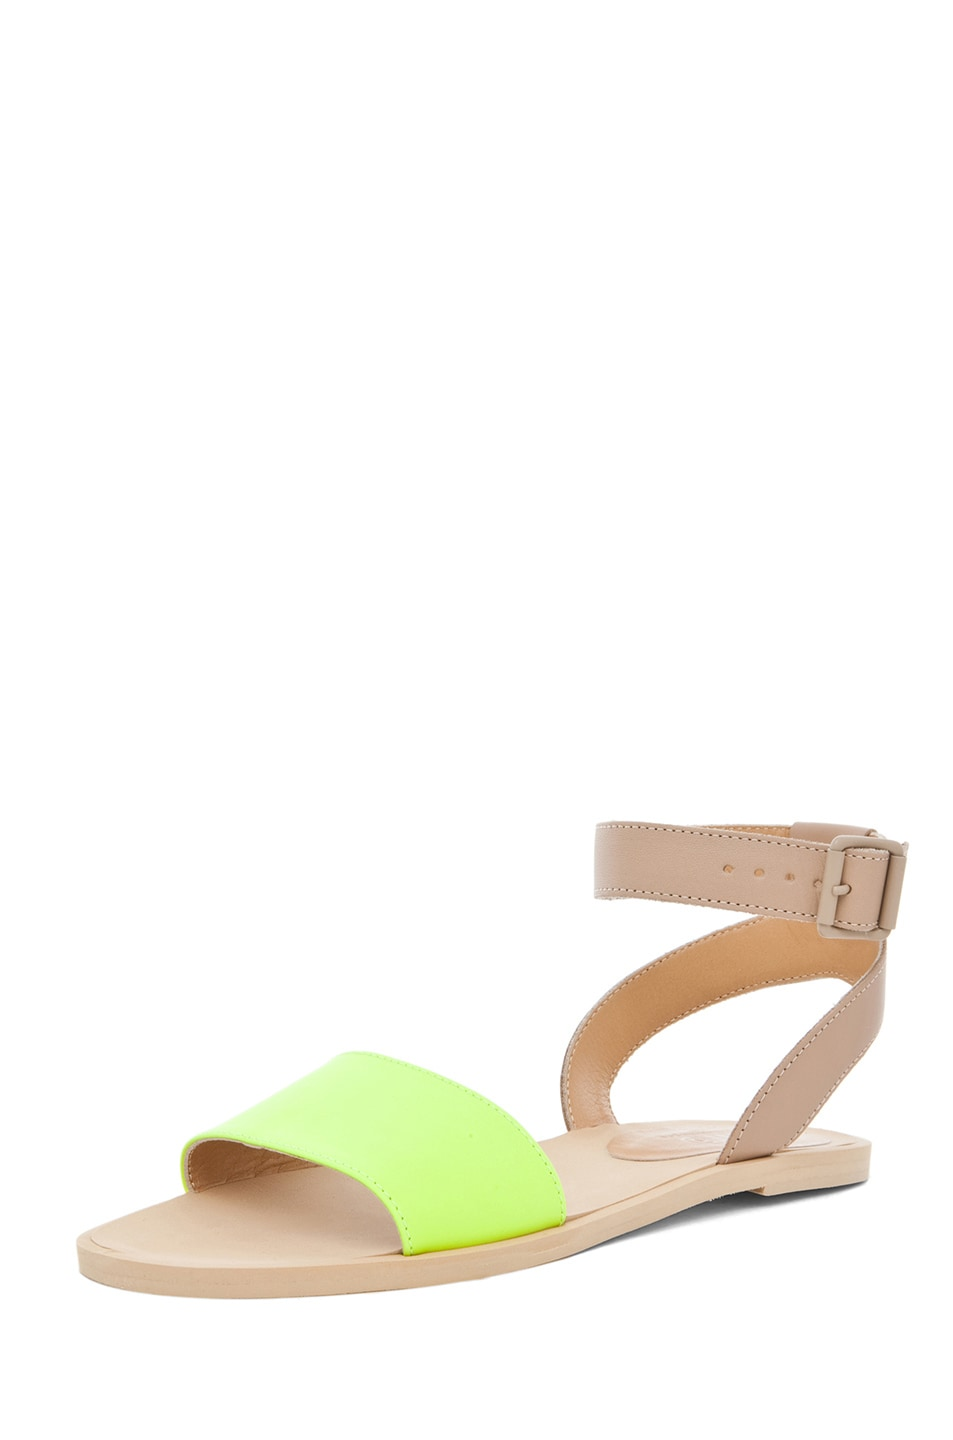 Image 2 of MM6 Maison Margiela Ankle Strap Sandal in Yellow & Beige